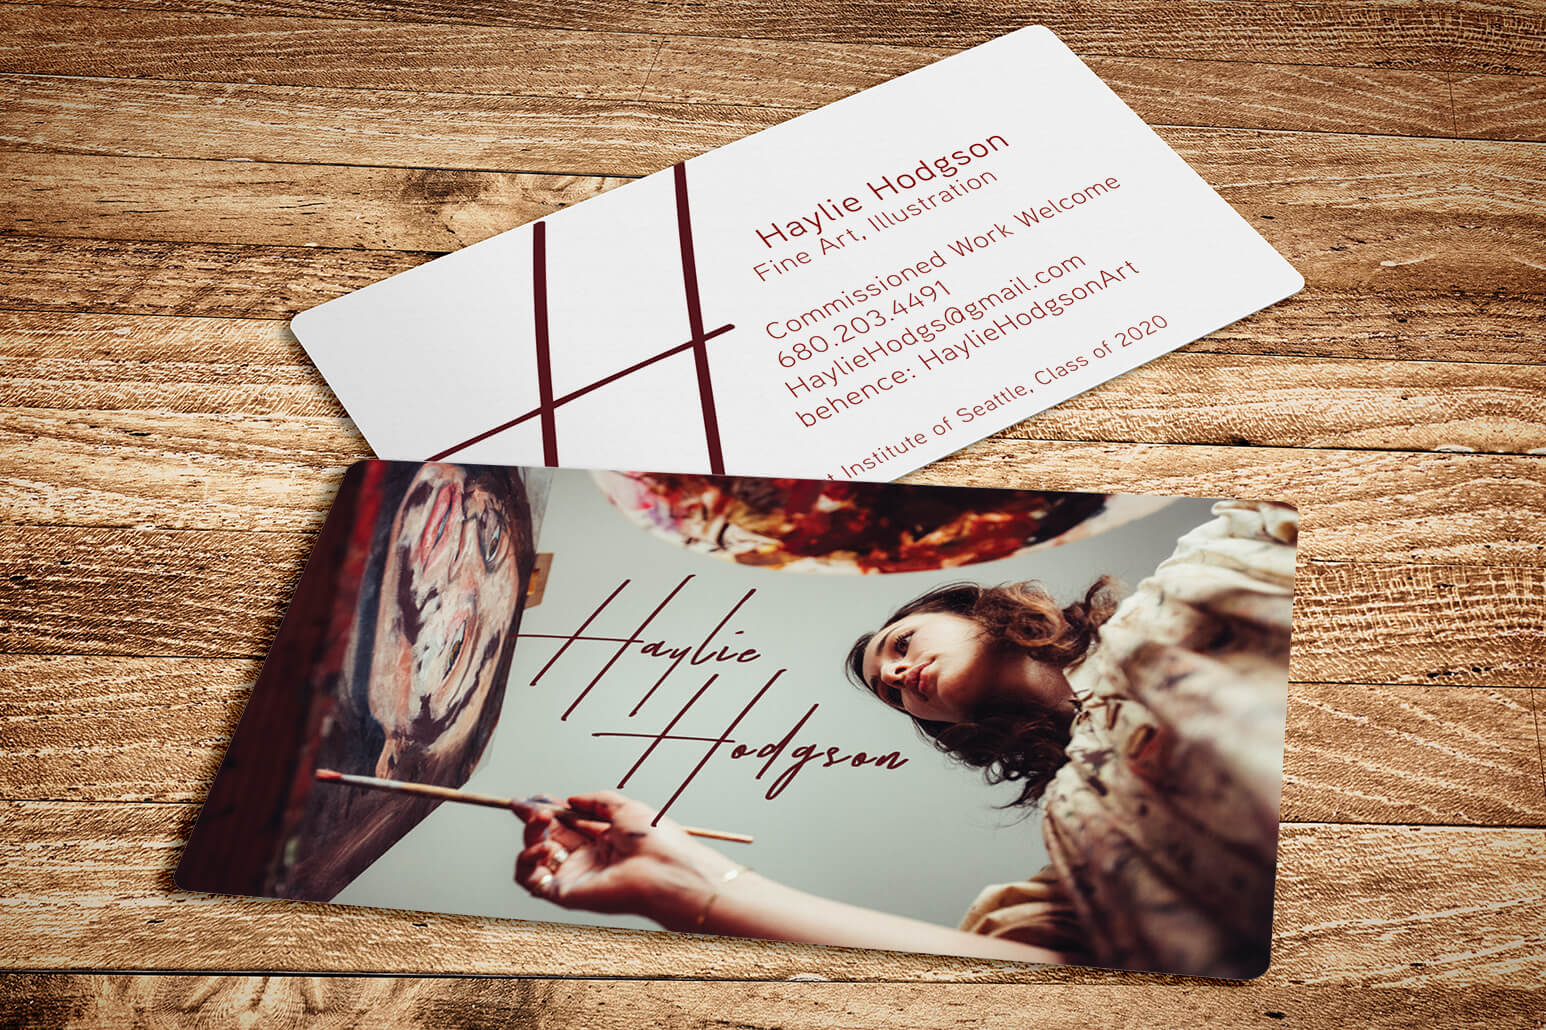 From artists to photographers, student business cards can be an effective marketing tool for recent graduates.